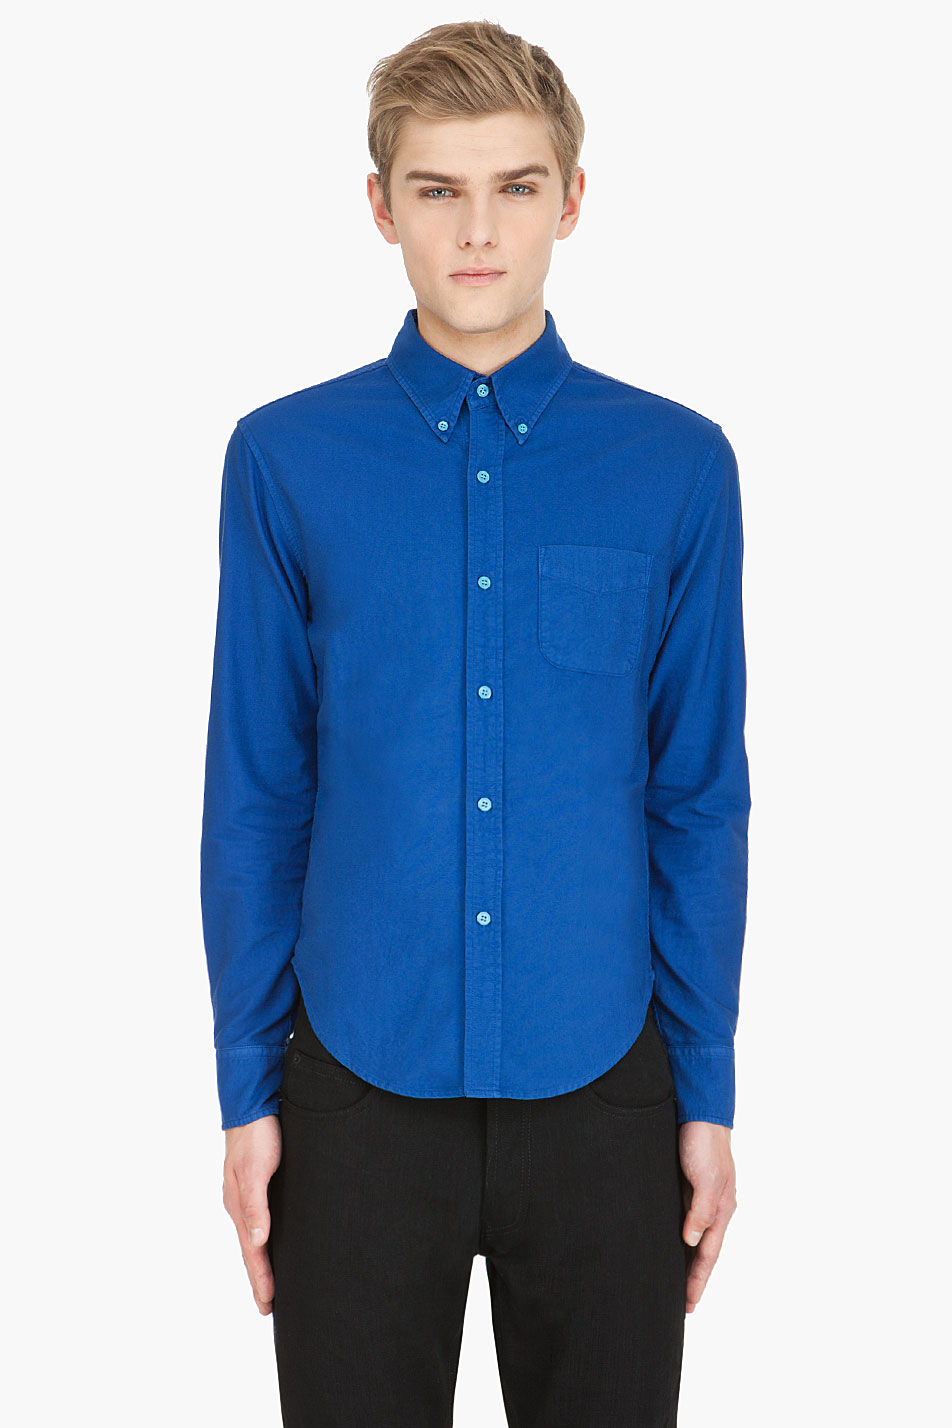 Band Of Outsiders Blue Oxford Button Down Shirt In Blue